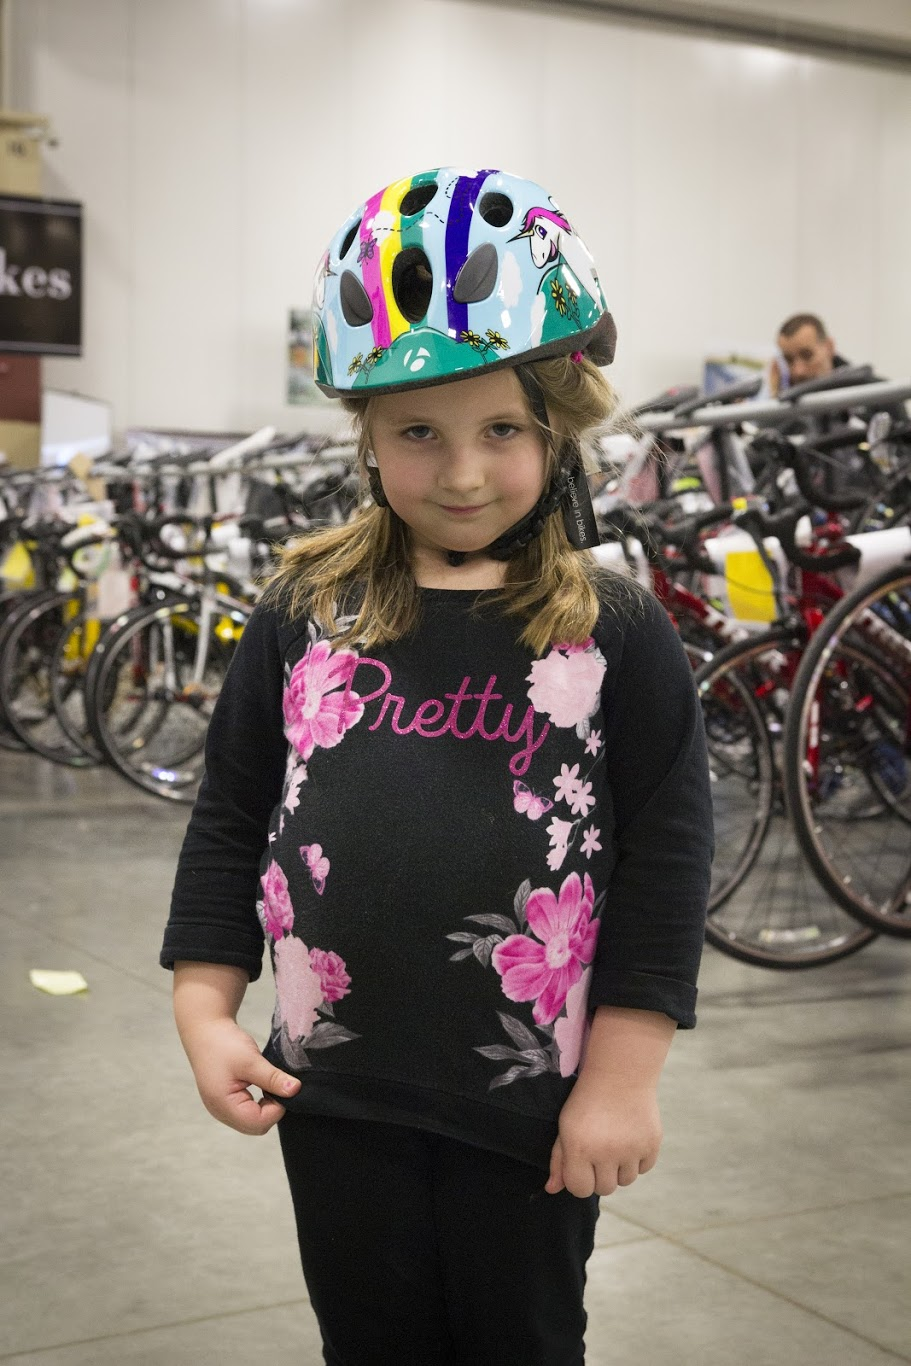 bike expo sale 1.jpg